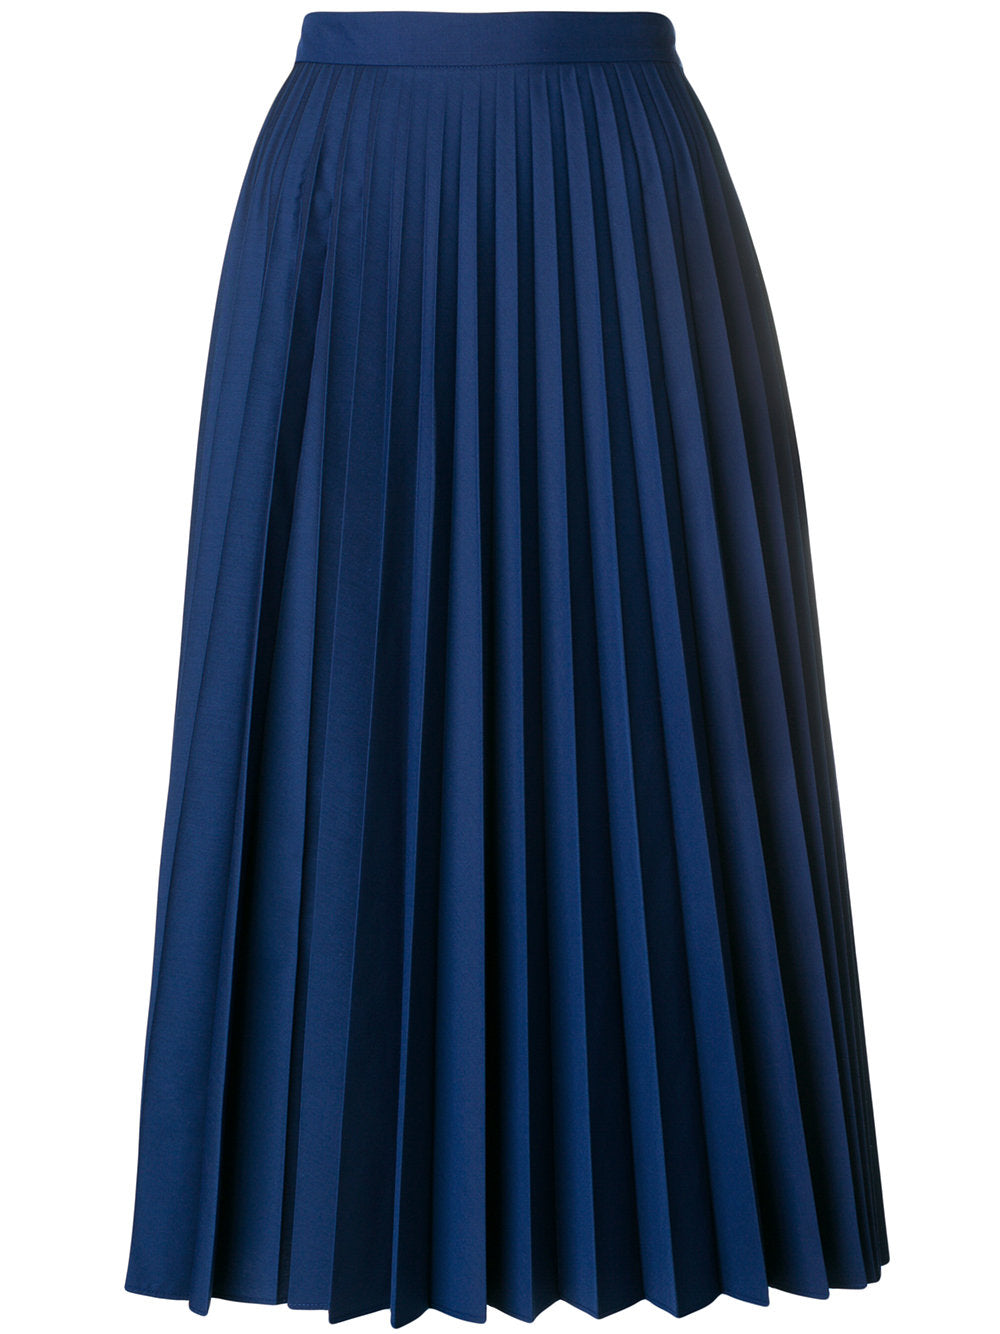 Margaret Howell - Sunray blue pleated midi skirt featured in Capsule Wardrobe on ownmuse.com